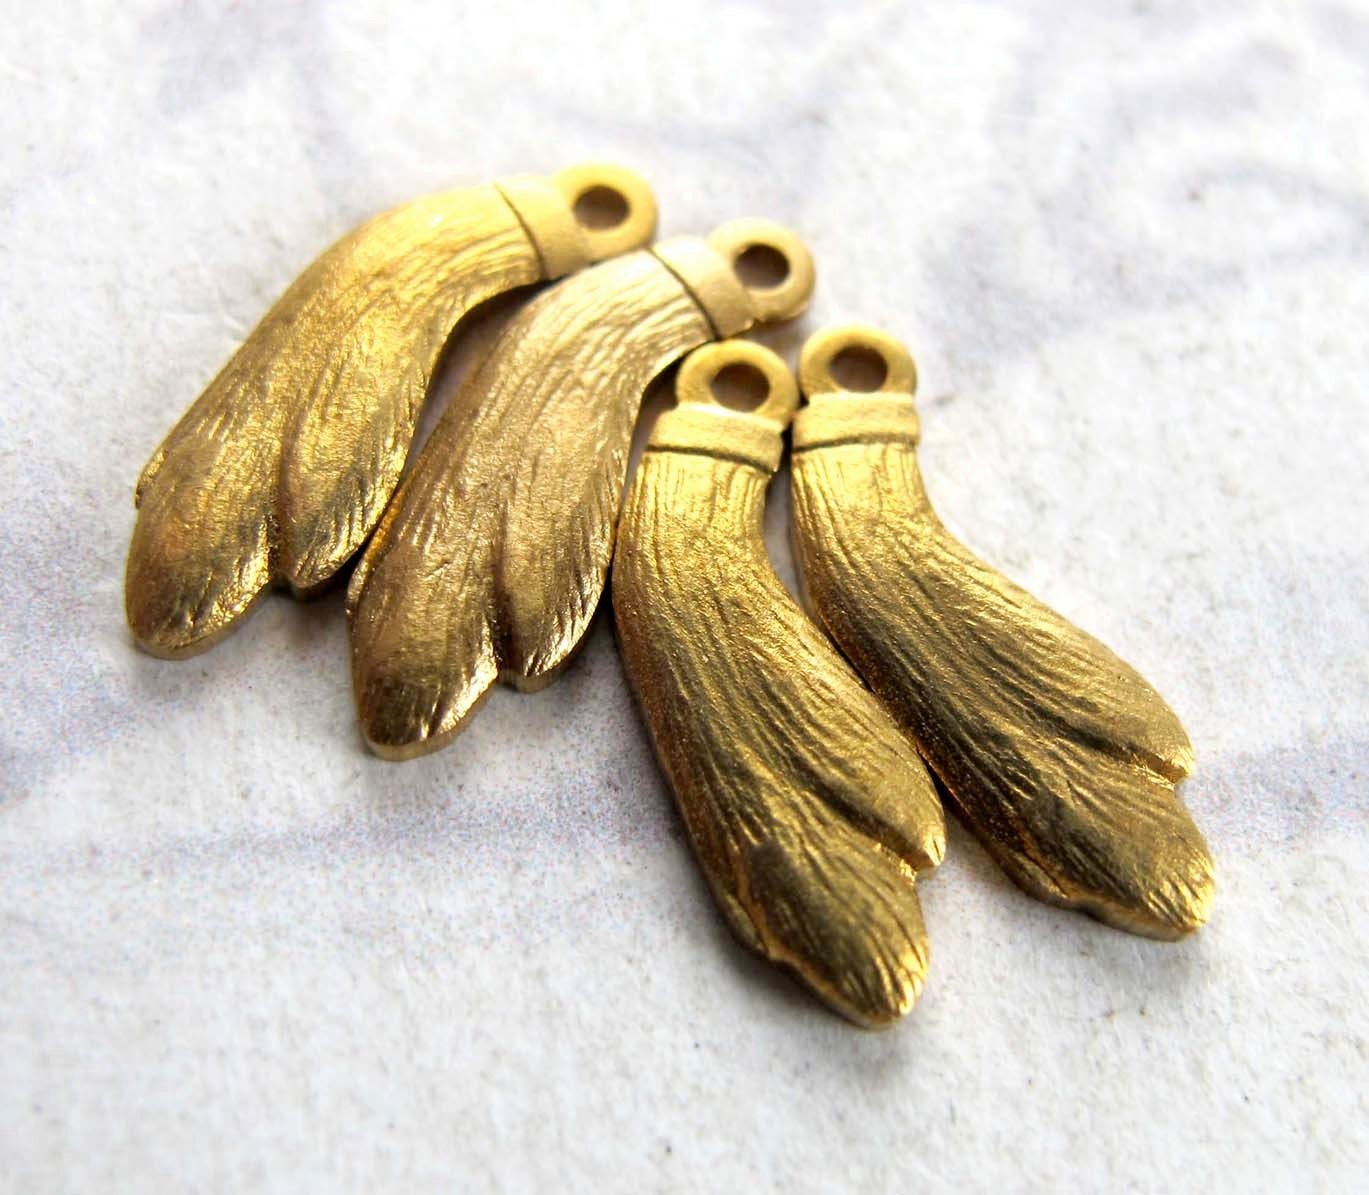 Brass Rabbits Foot Charms 4X M644-A by EpochBeads on Etsy